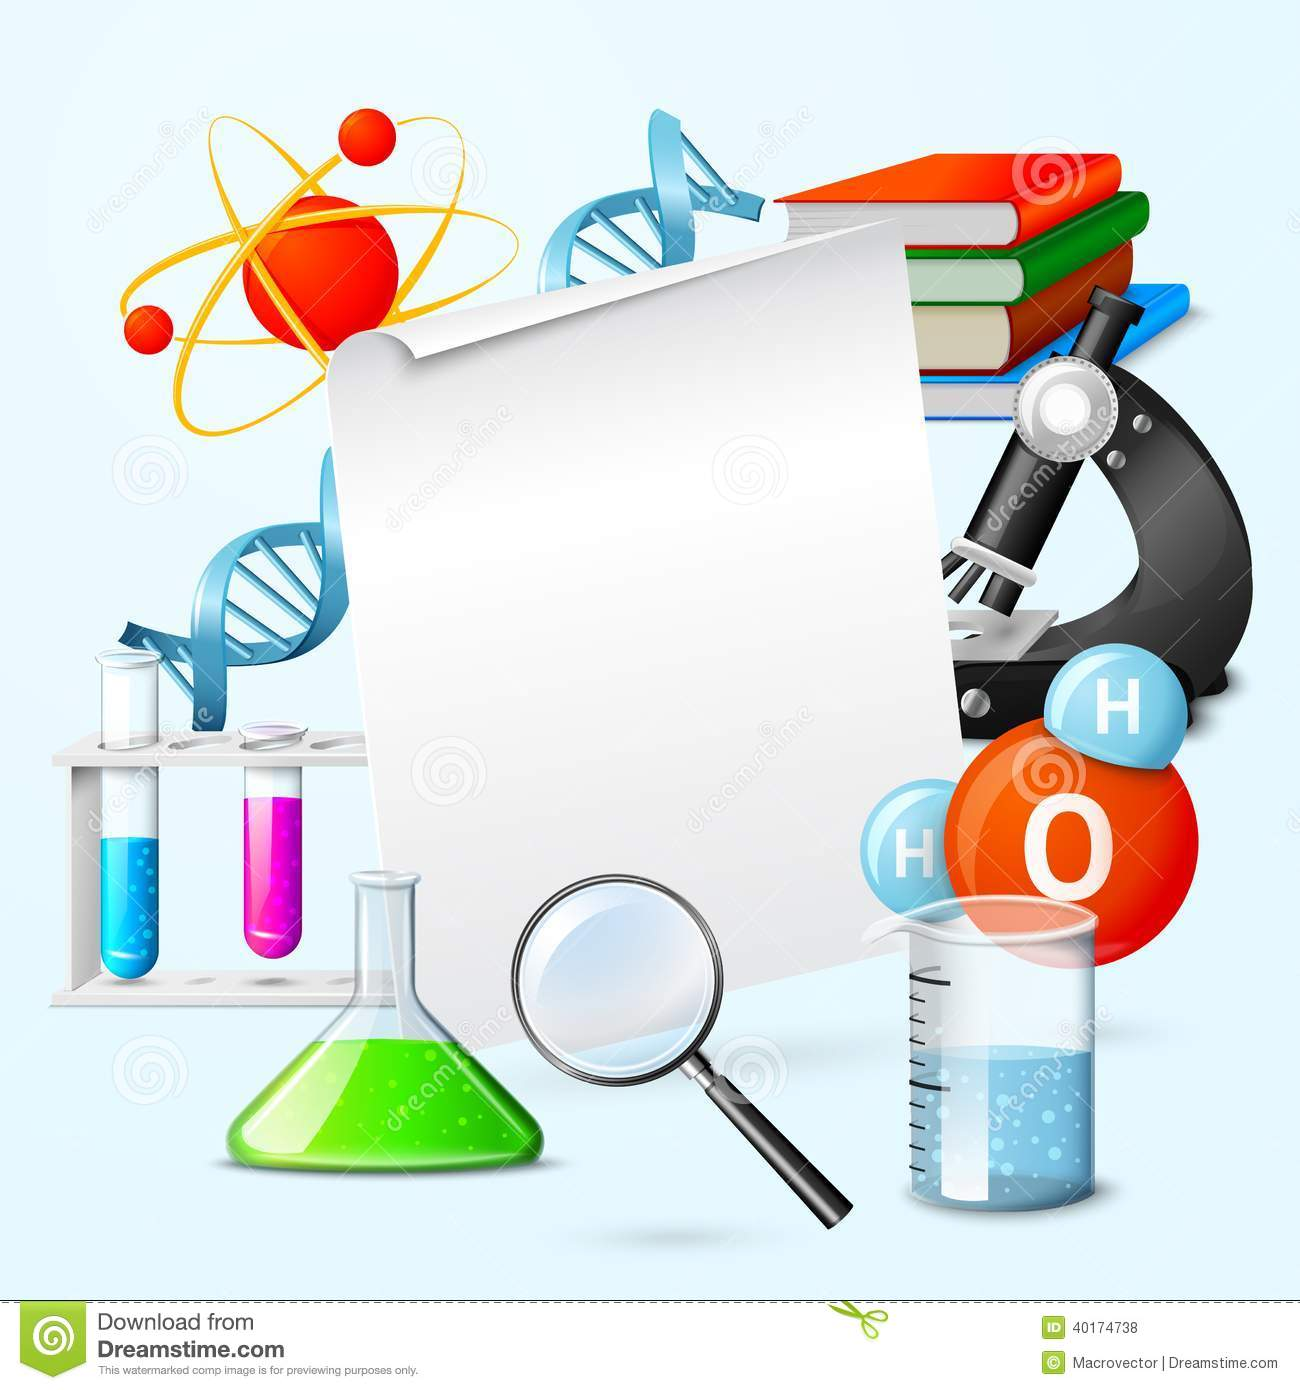 Elements of a scientific research paper